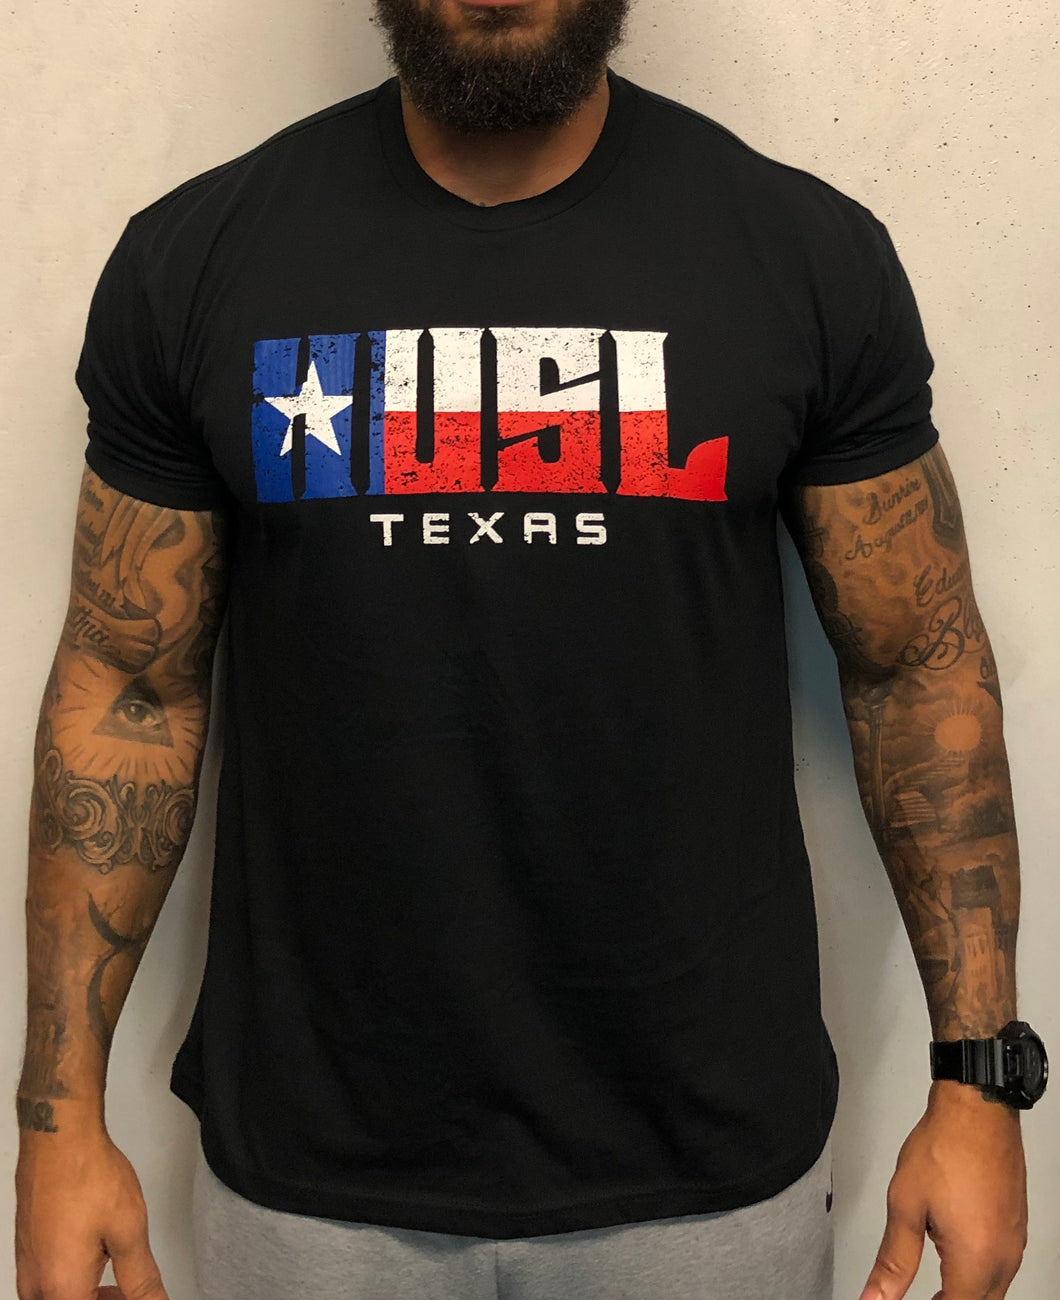 Texas HUSL (blk/red/wht/Blu)